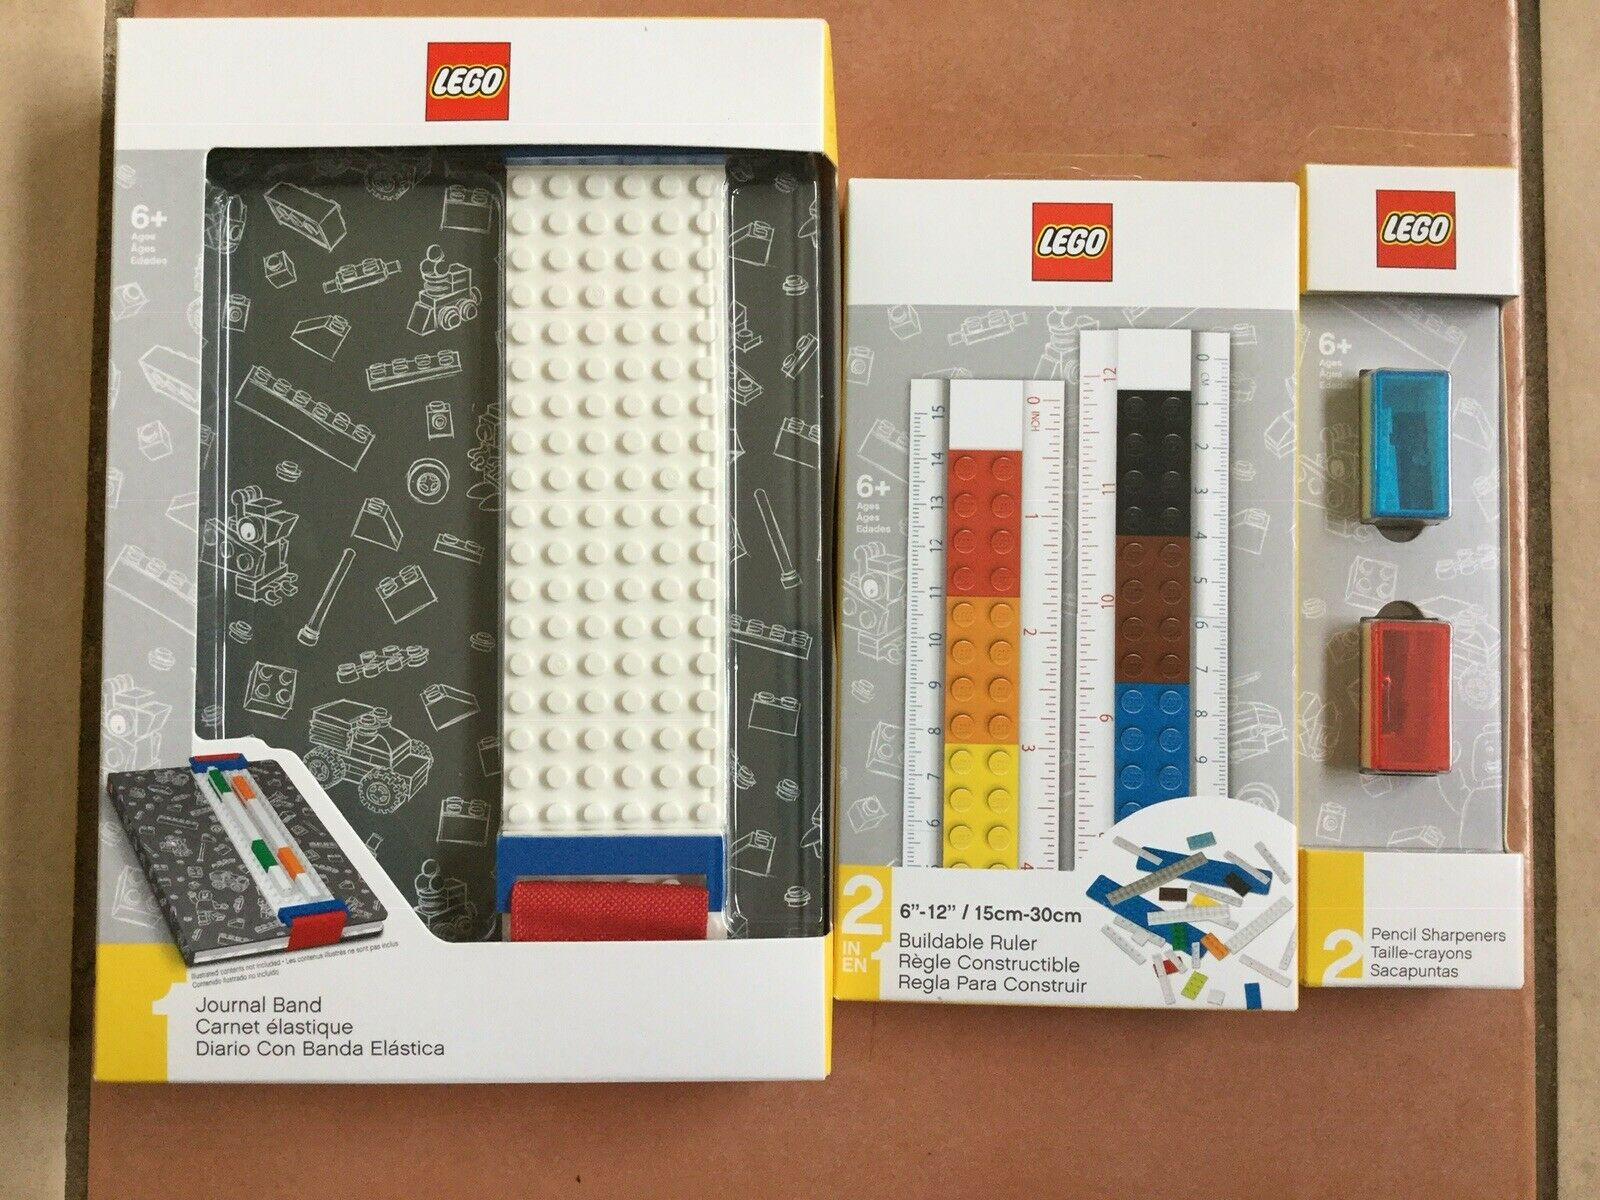 New Lego Stationary Bundle Set A5 Journal Notebook, Ruler And Sharpeners